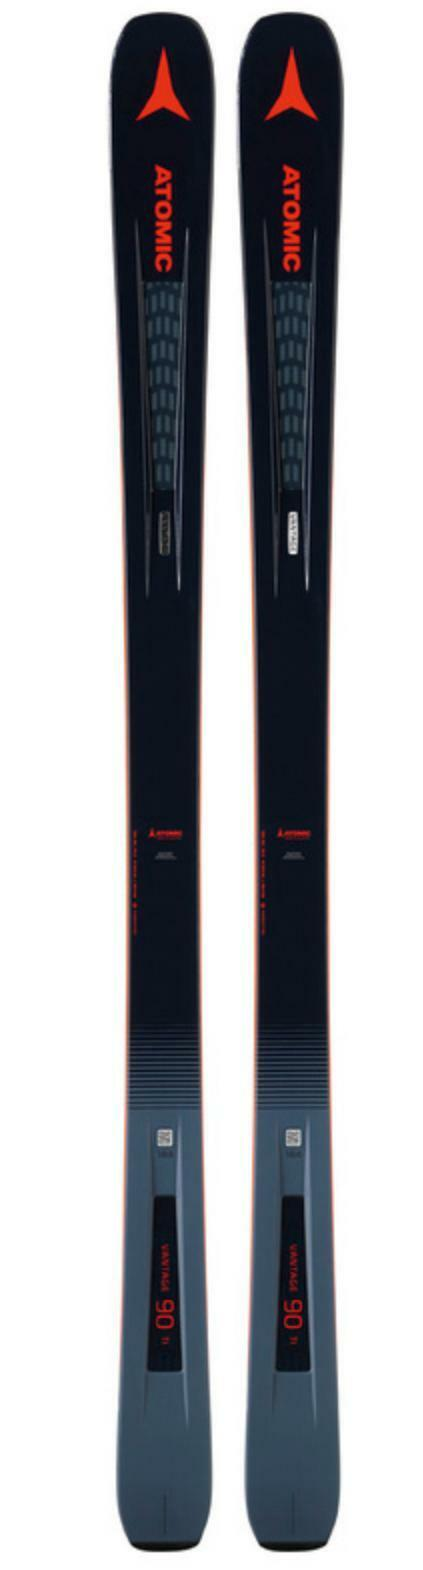 2019 Atomic Vantage 90 Ti snow skis 184 cm (BINDING options avail to add) NEW